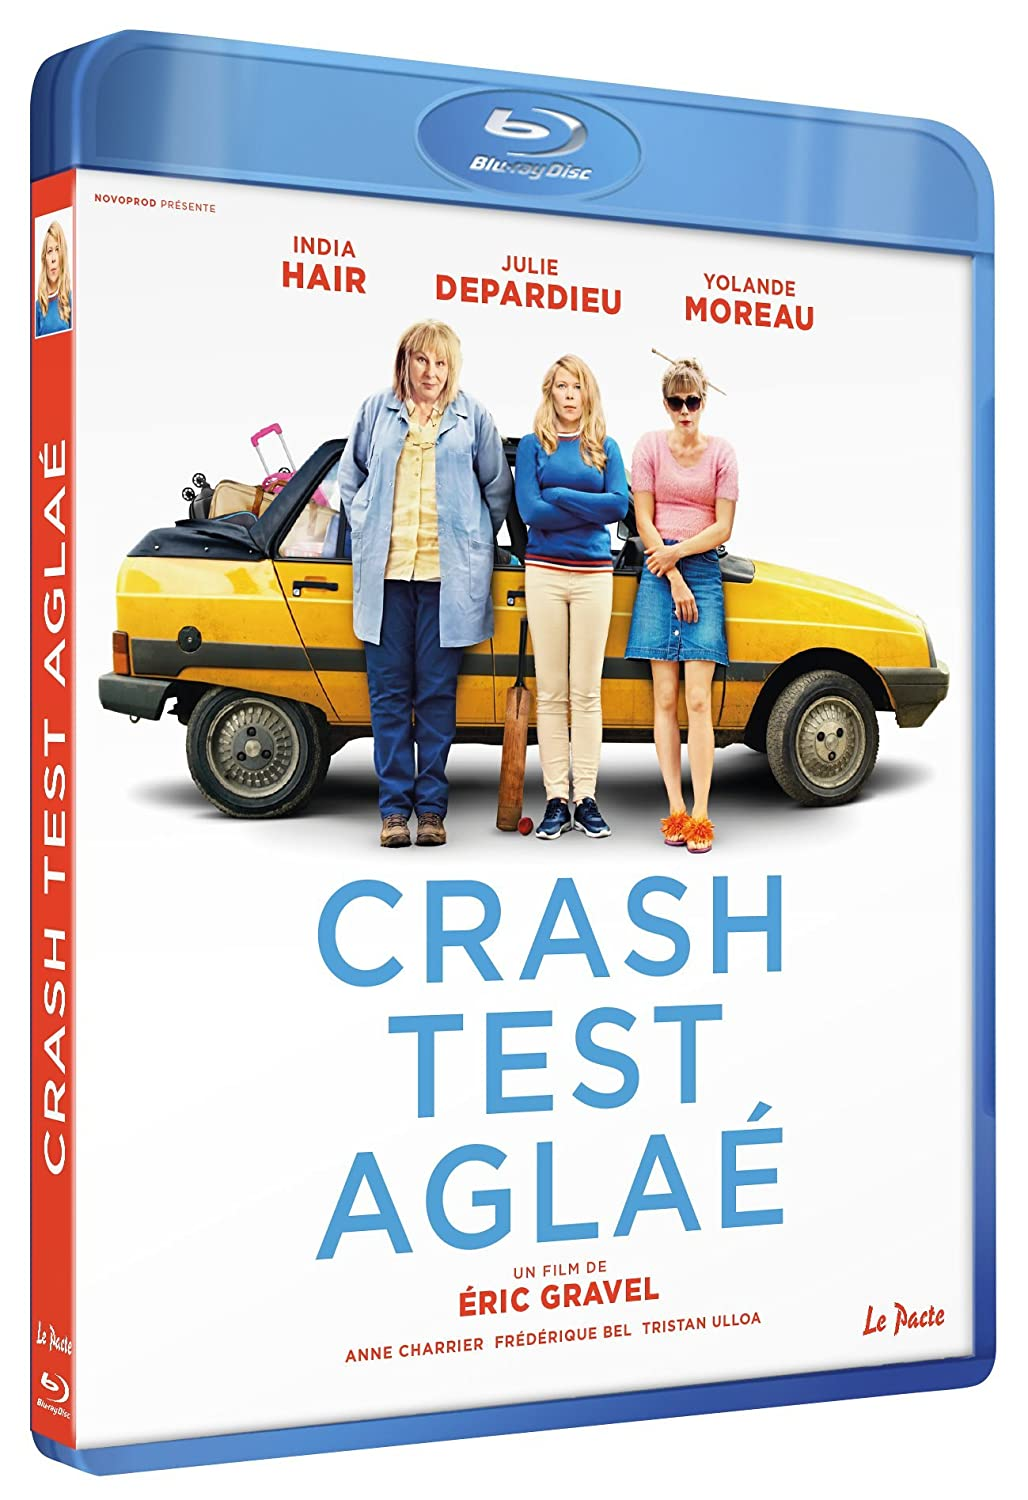 Blu-ray du film Crash test Aglaë